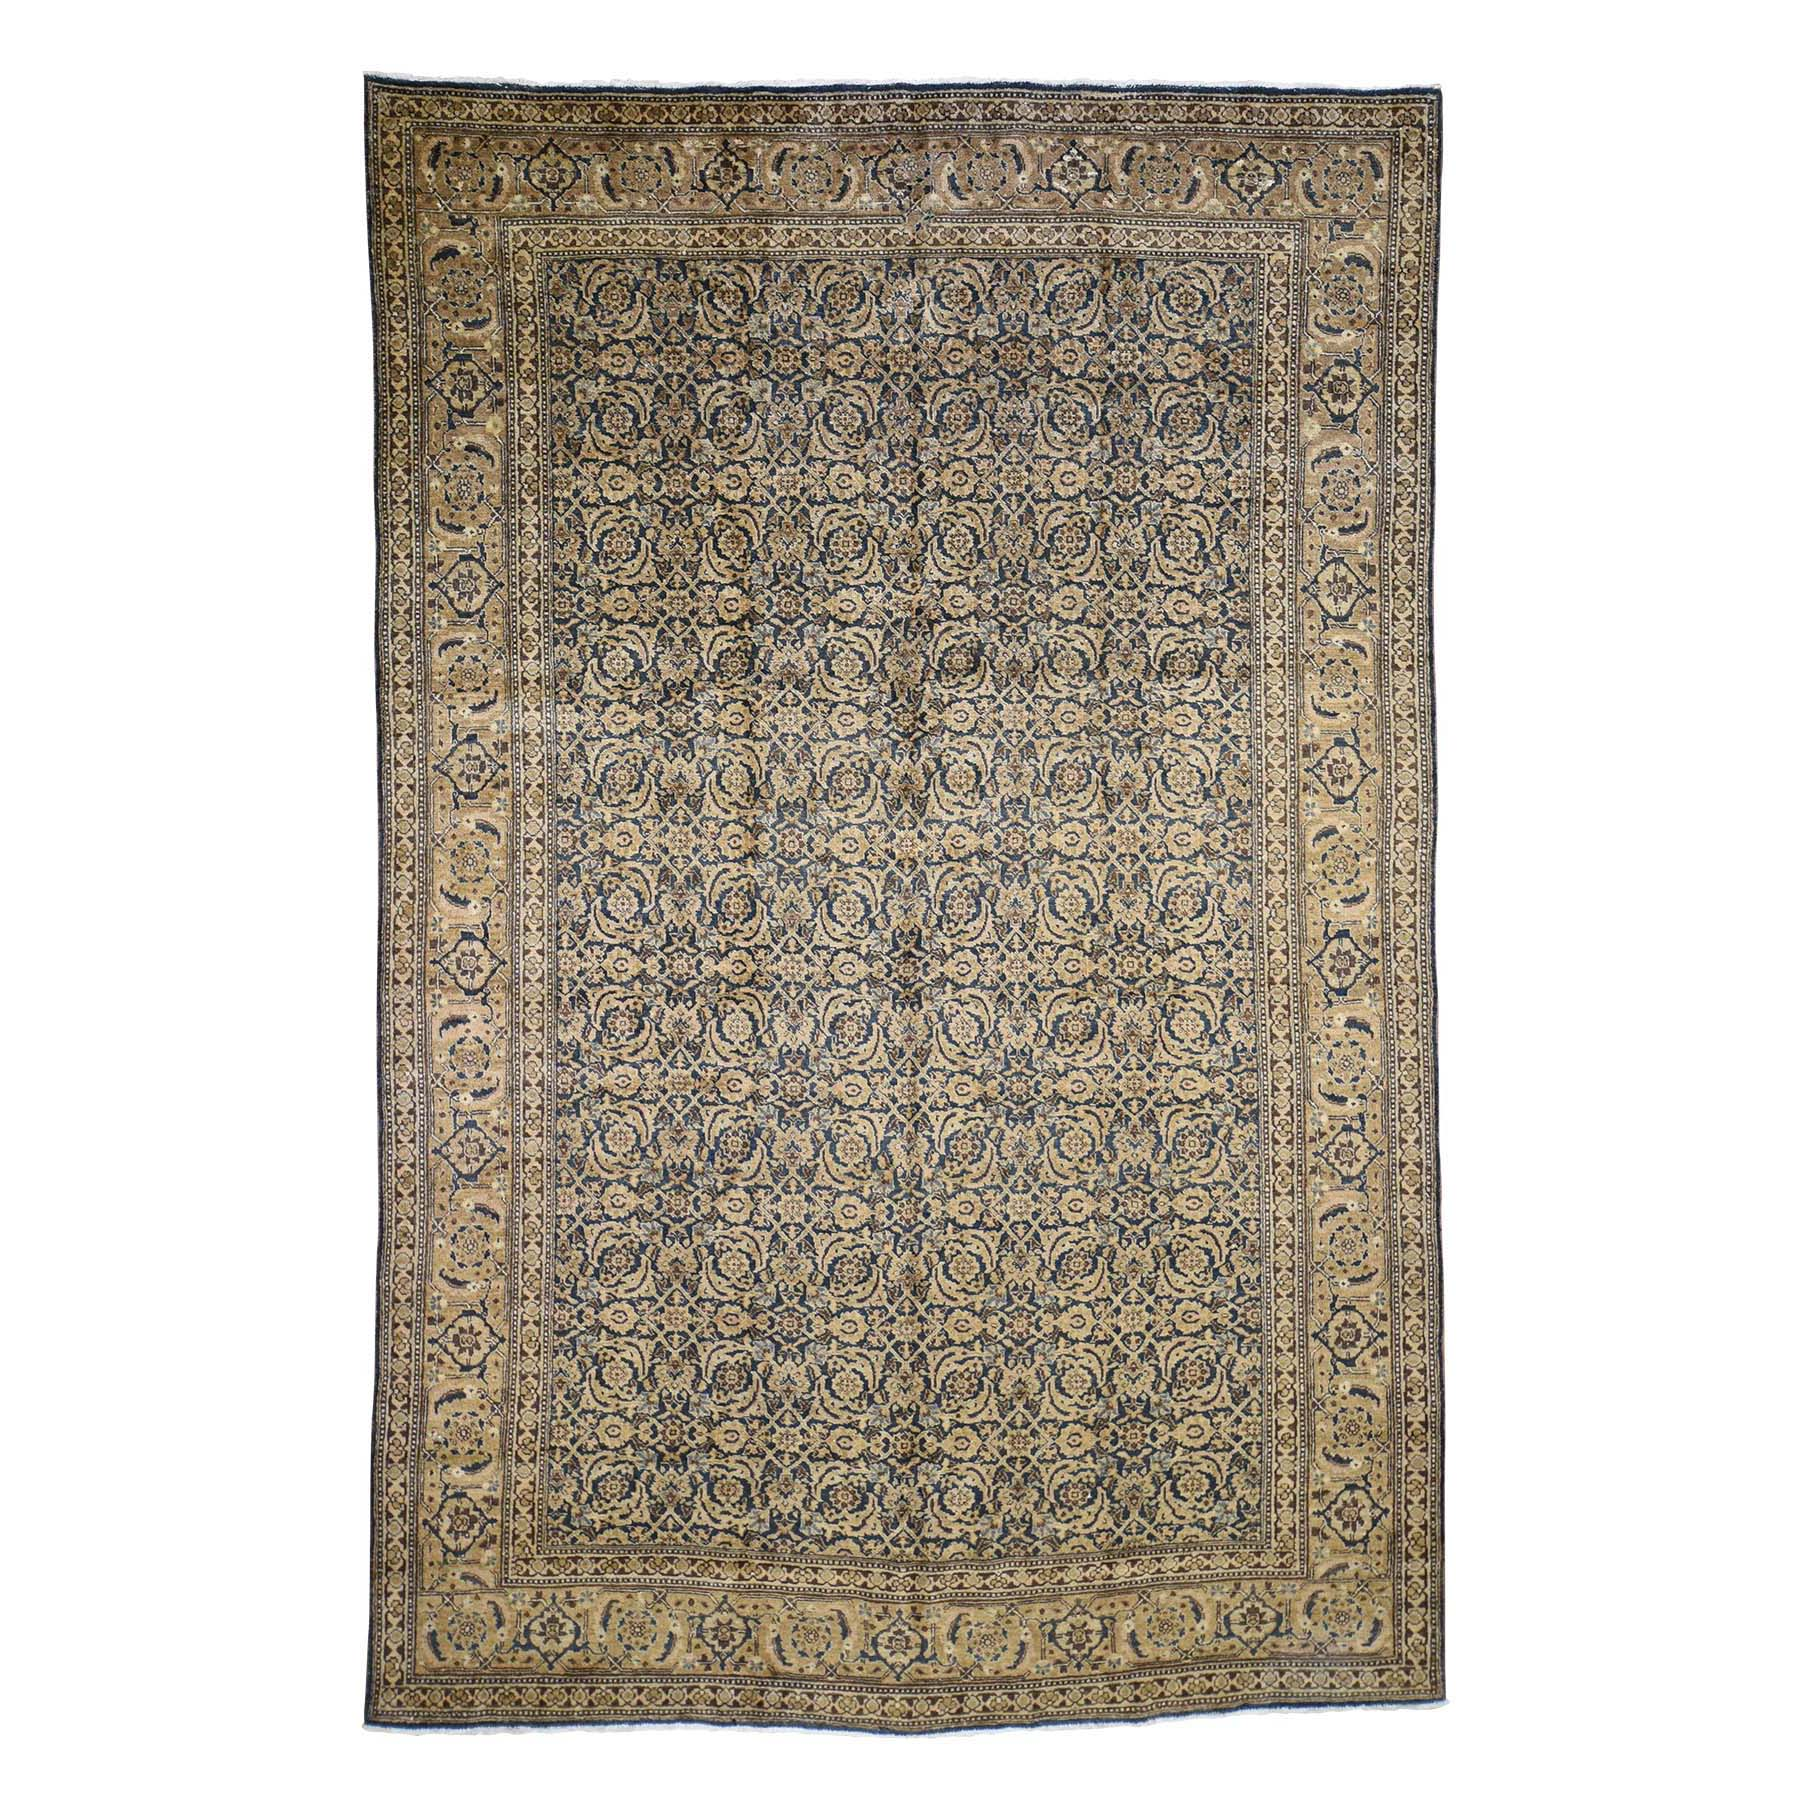 """7'X10'6"""" Antique Persian Tabriz Full Pile Exc Condition Hand Knotted Oriental Rug moad60a6"""